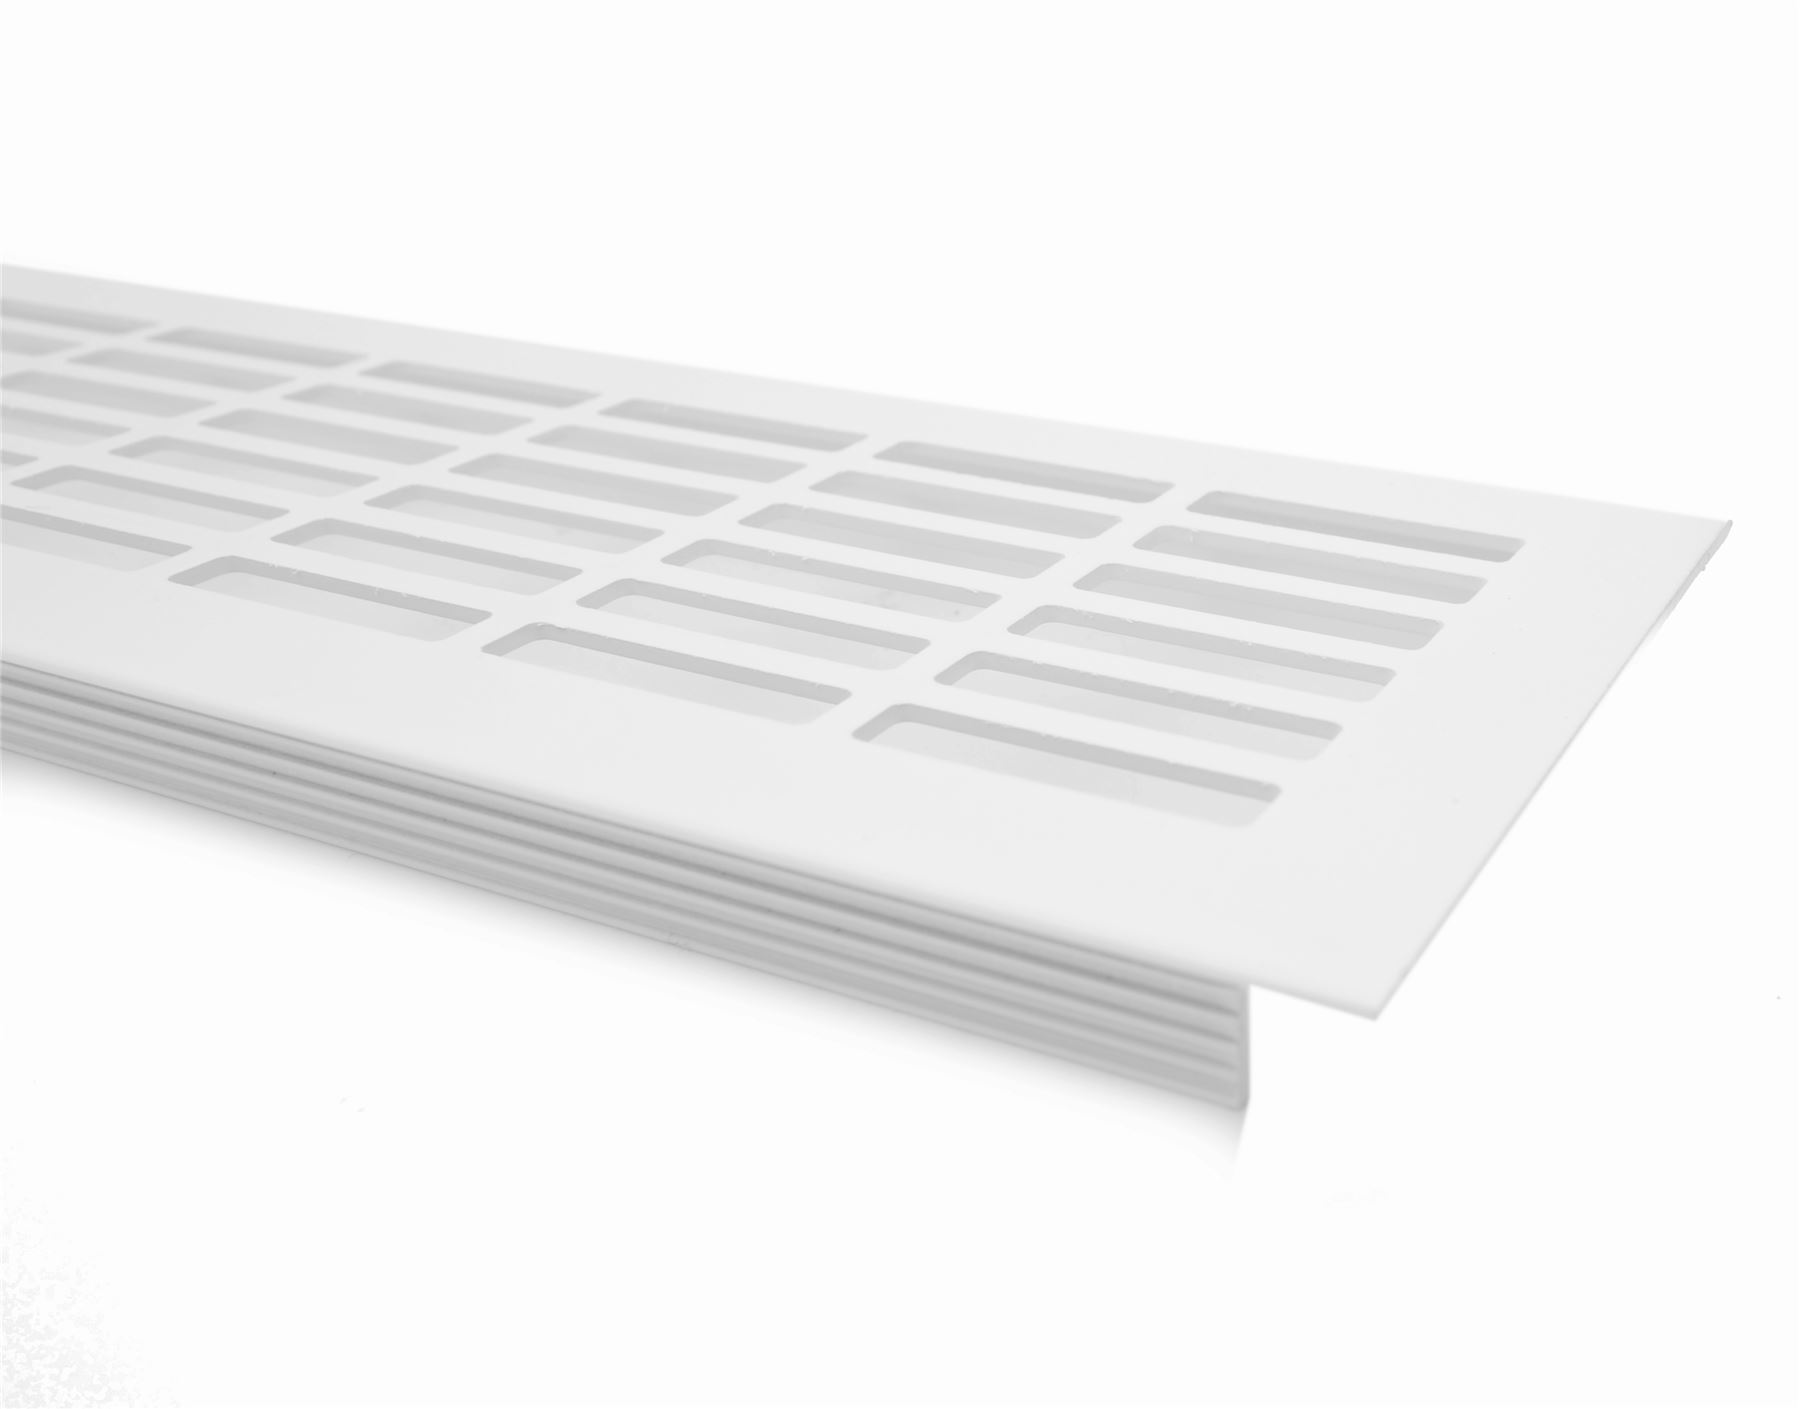 Aluminium white brushed chrome vent grill kitchen plinth for Kitchen units without plinths